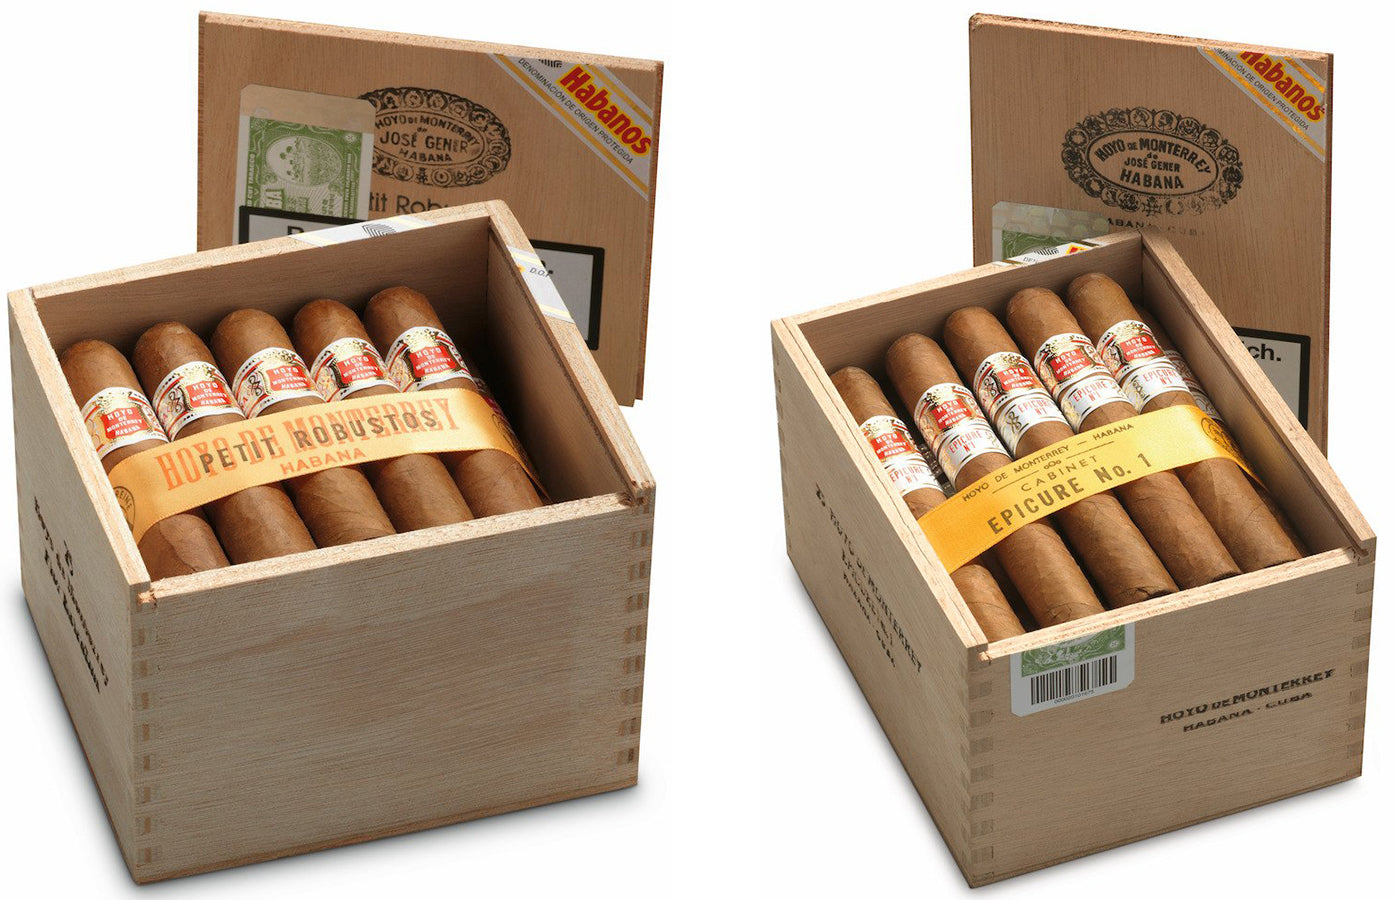 Hoyo de monterrey petit robusto cigar and epicure no. 1 cigar EGM Cigars